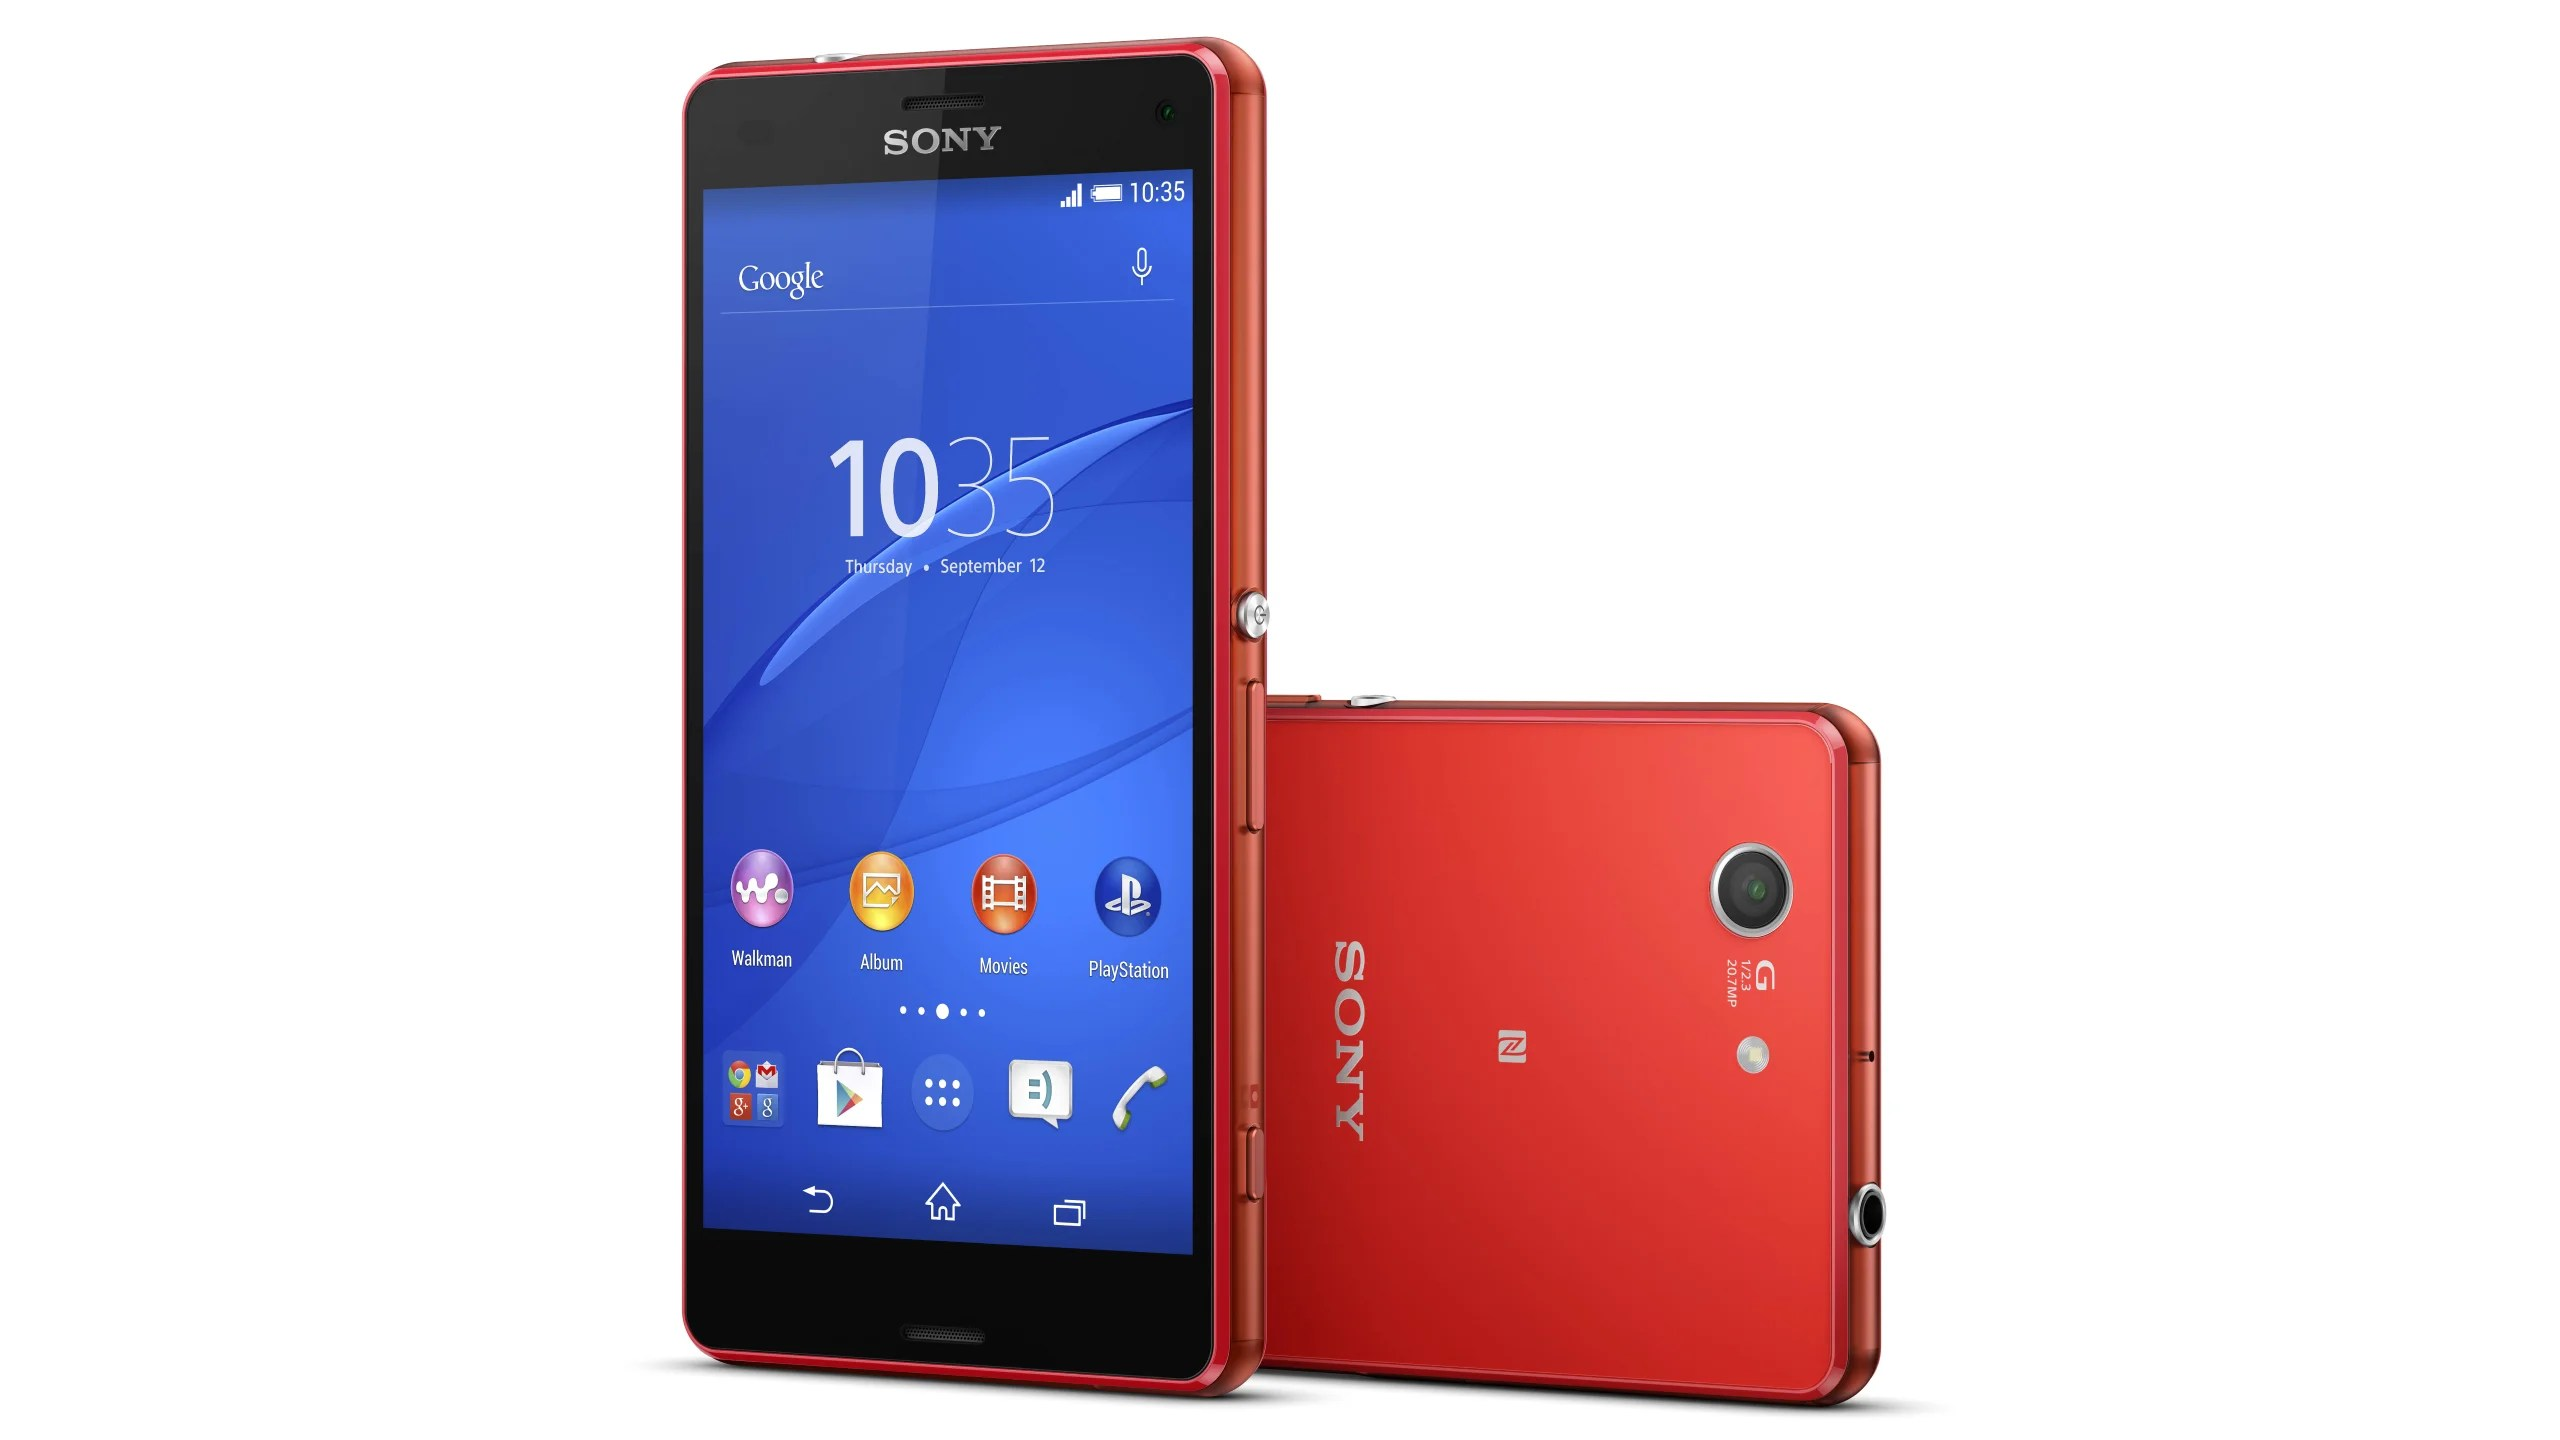 Sony Xz1 Compact System Update Sony Xperia Z3 Compact Review Replaced By The Xz1 Compact